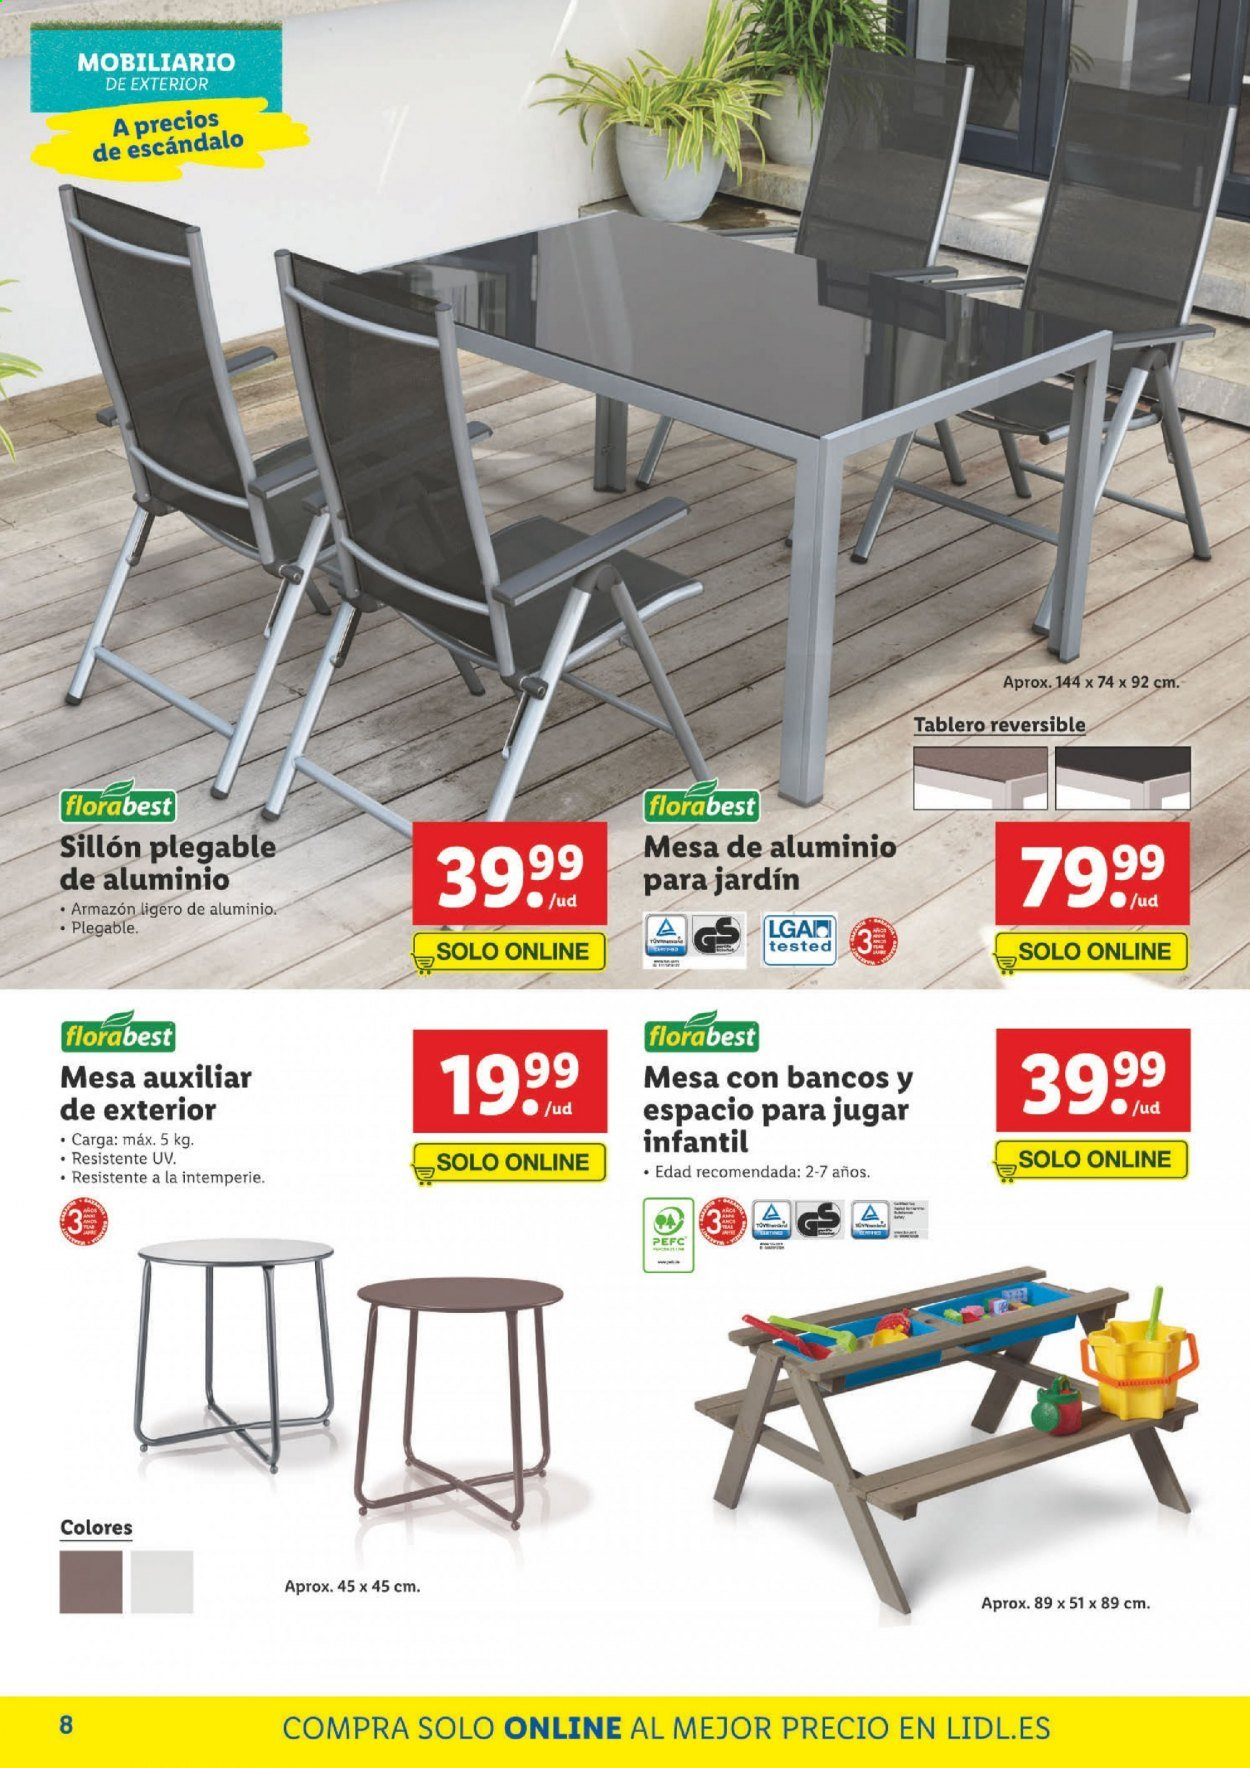 Folleto actual Lidl - Ventas - plegable, banco, mesa, mesa auxiliar, tablero, sillón. Página 8.